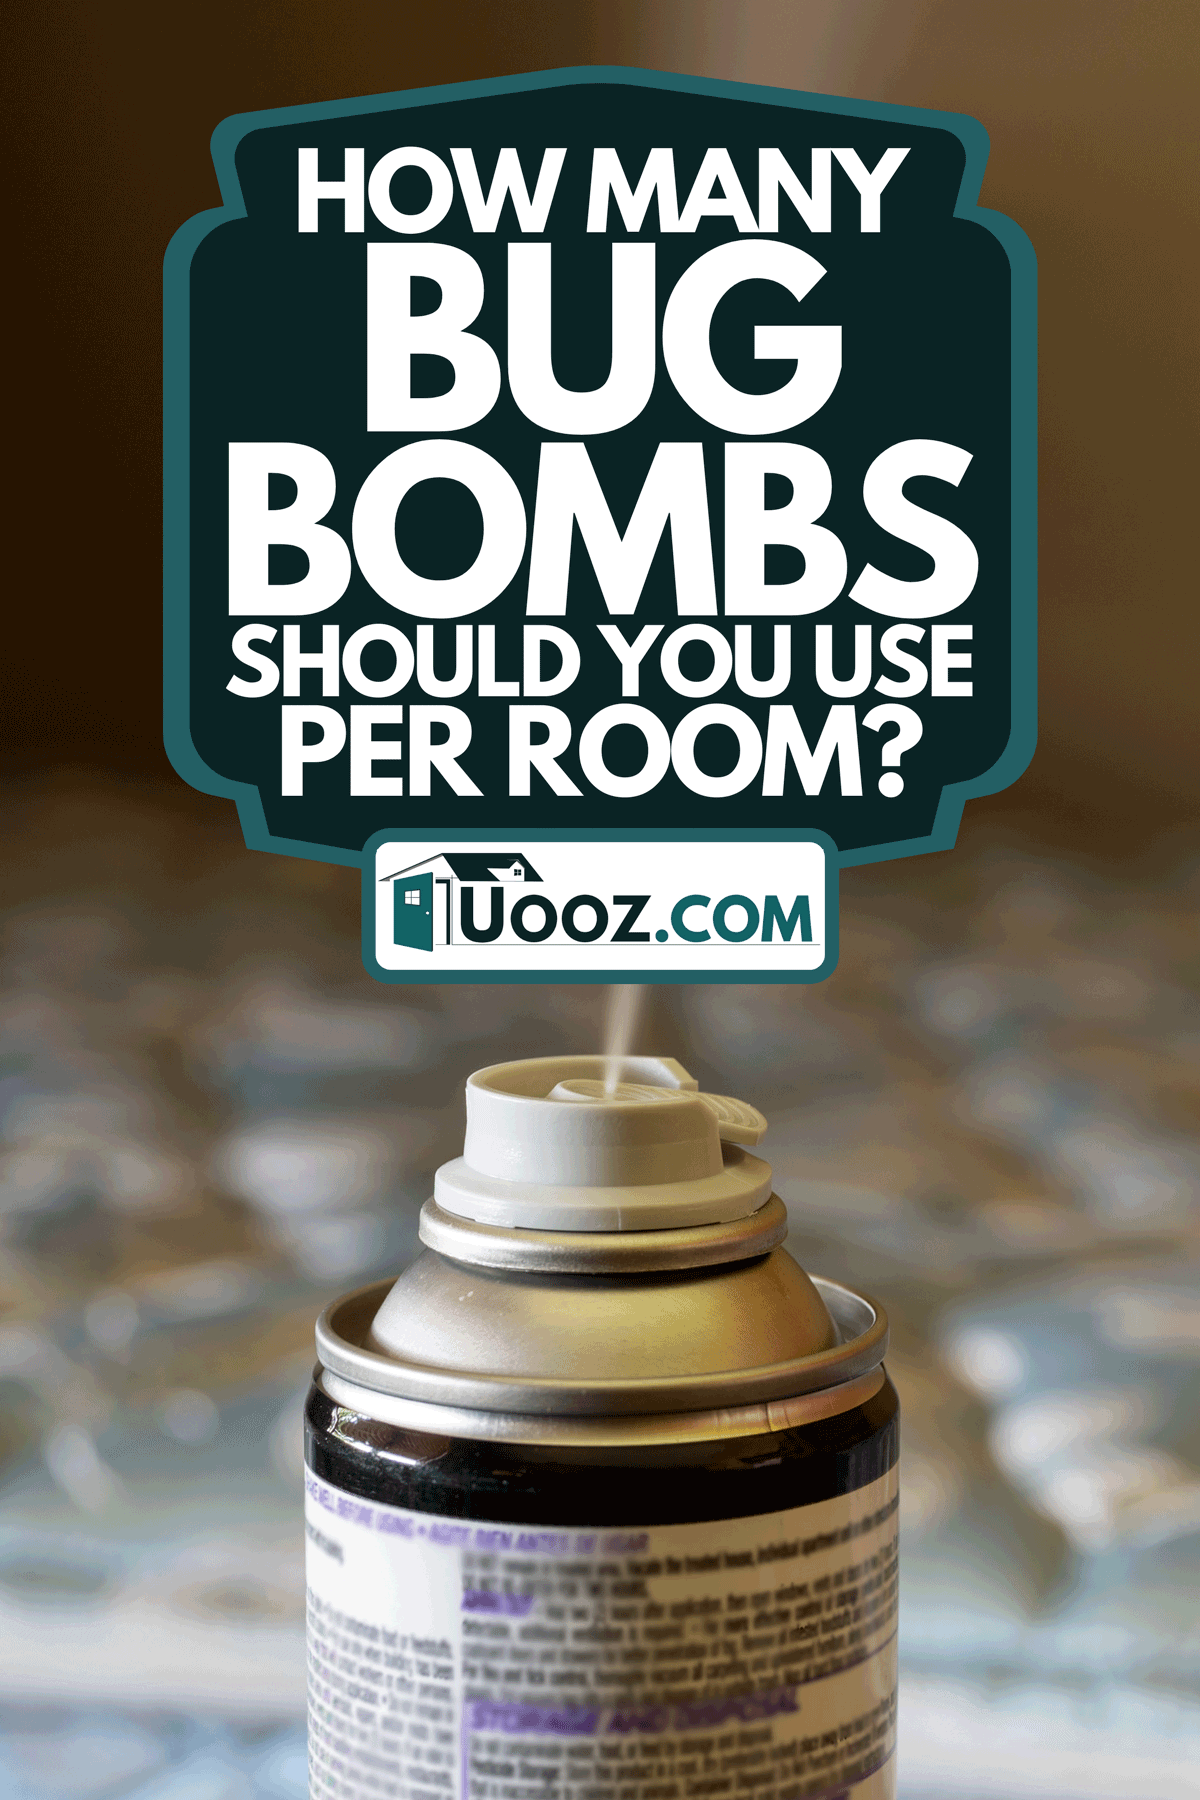 An insecticide aerosol fogger used to kill bed bugs, How Many Bug Bombs Should You Use Per Room?